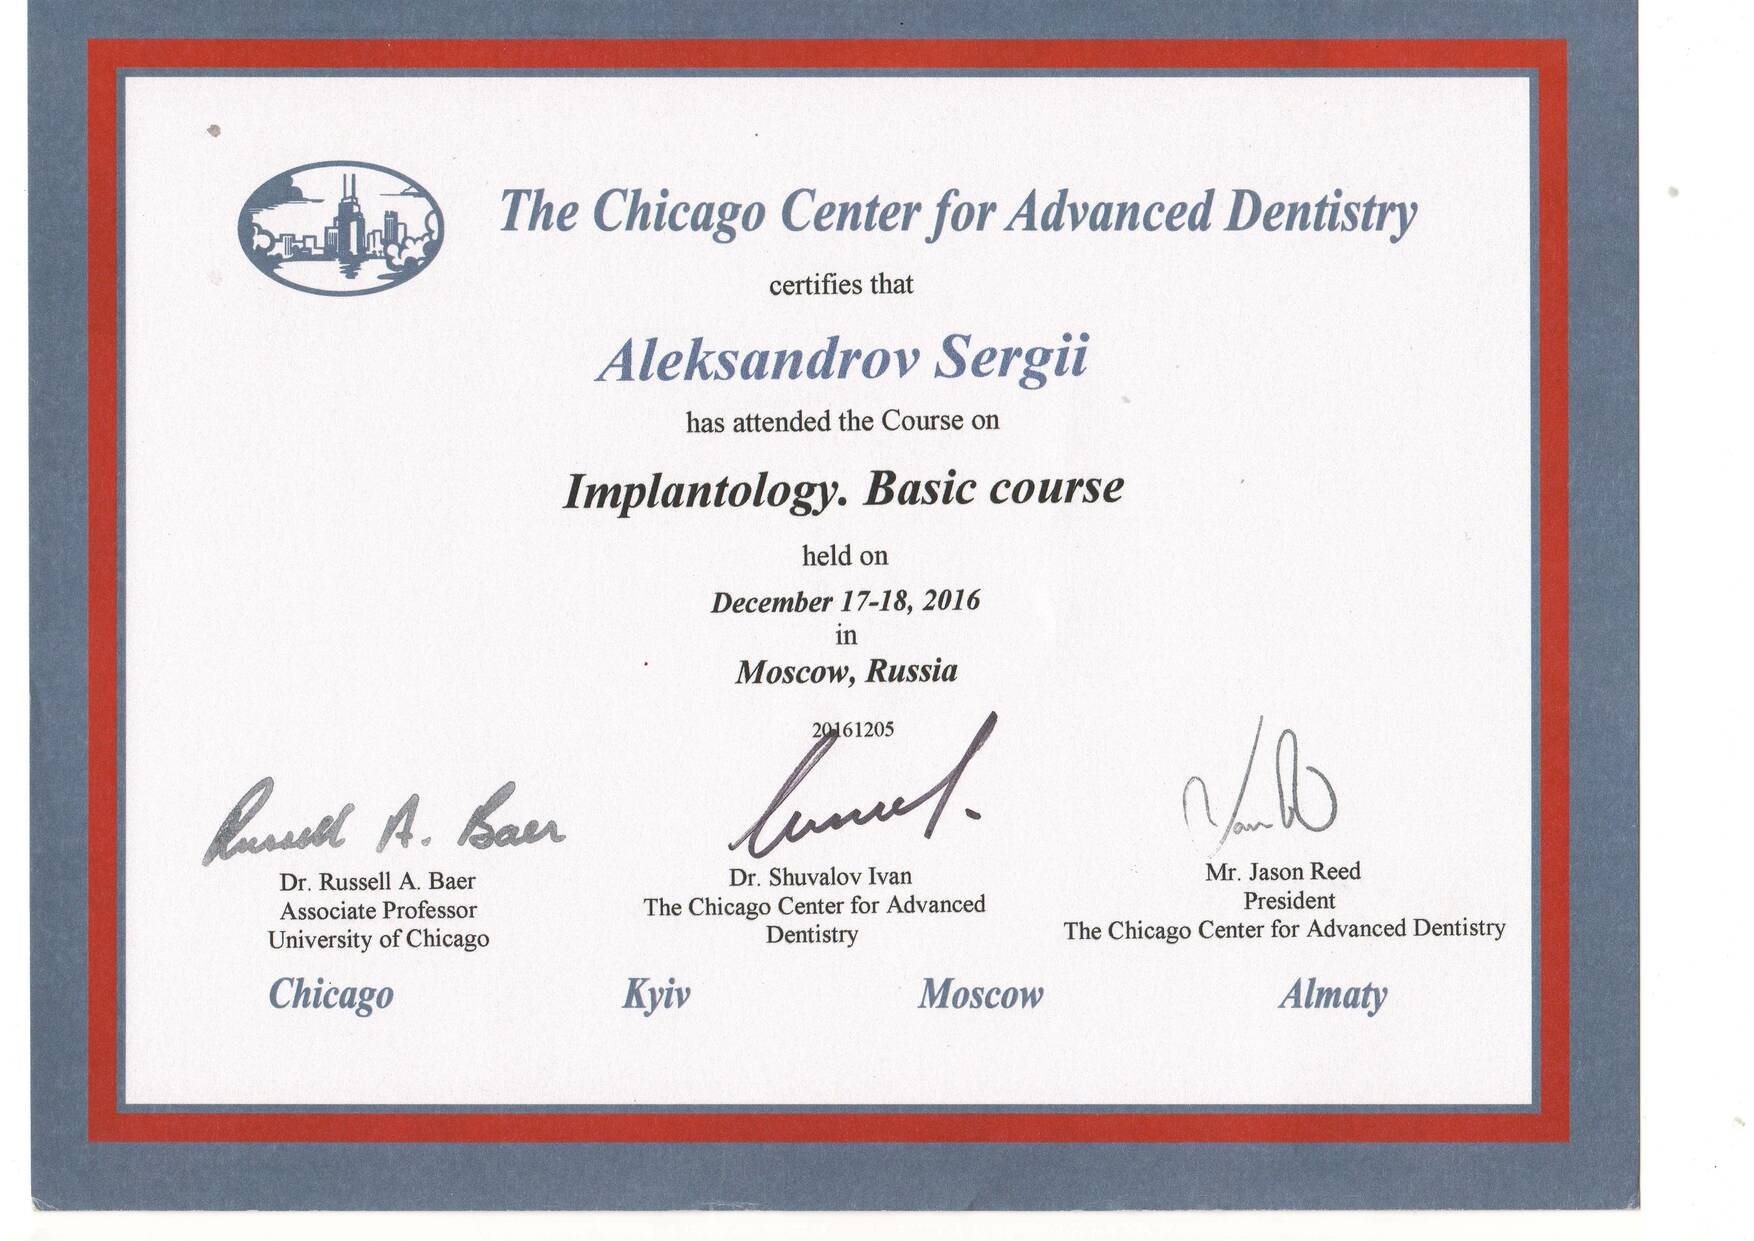 The Chicago Center for Advanced Dentistry Implantology. Basic course - 18 декабря 2016